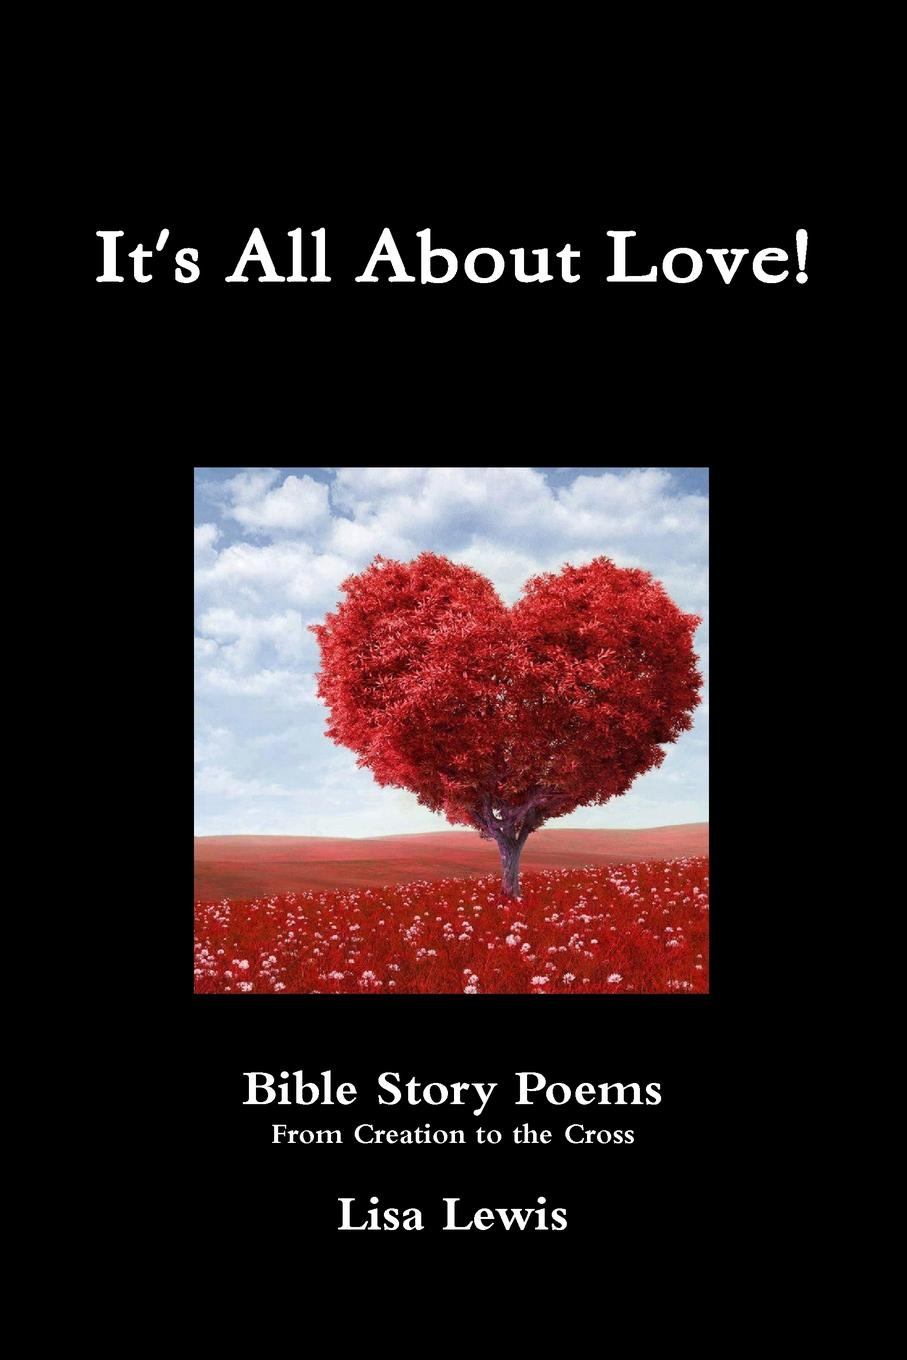 Lisa Lewis It.s All about Love. pedagogical poem